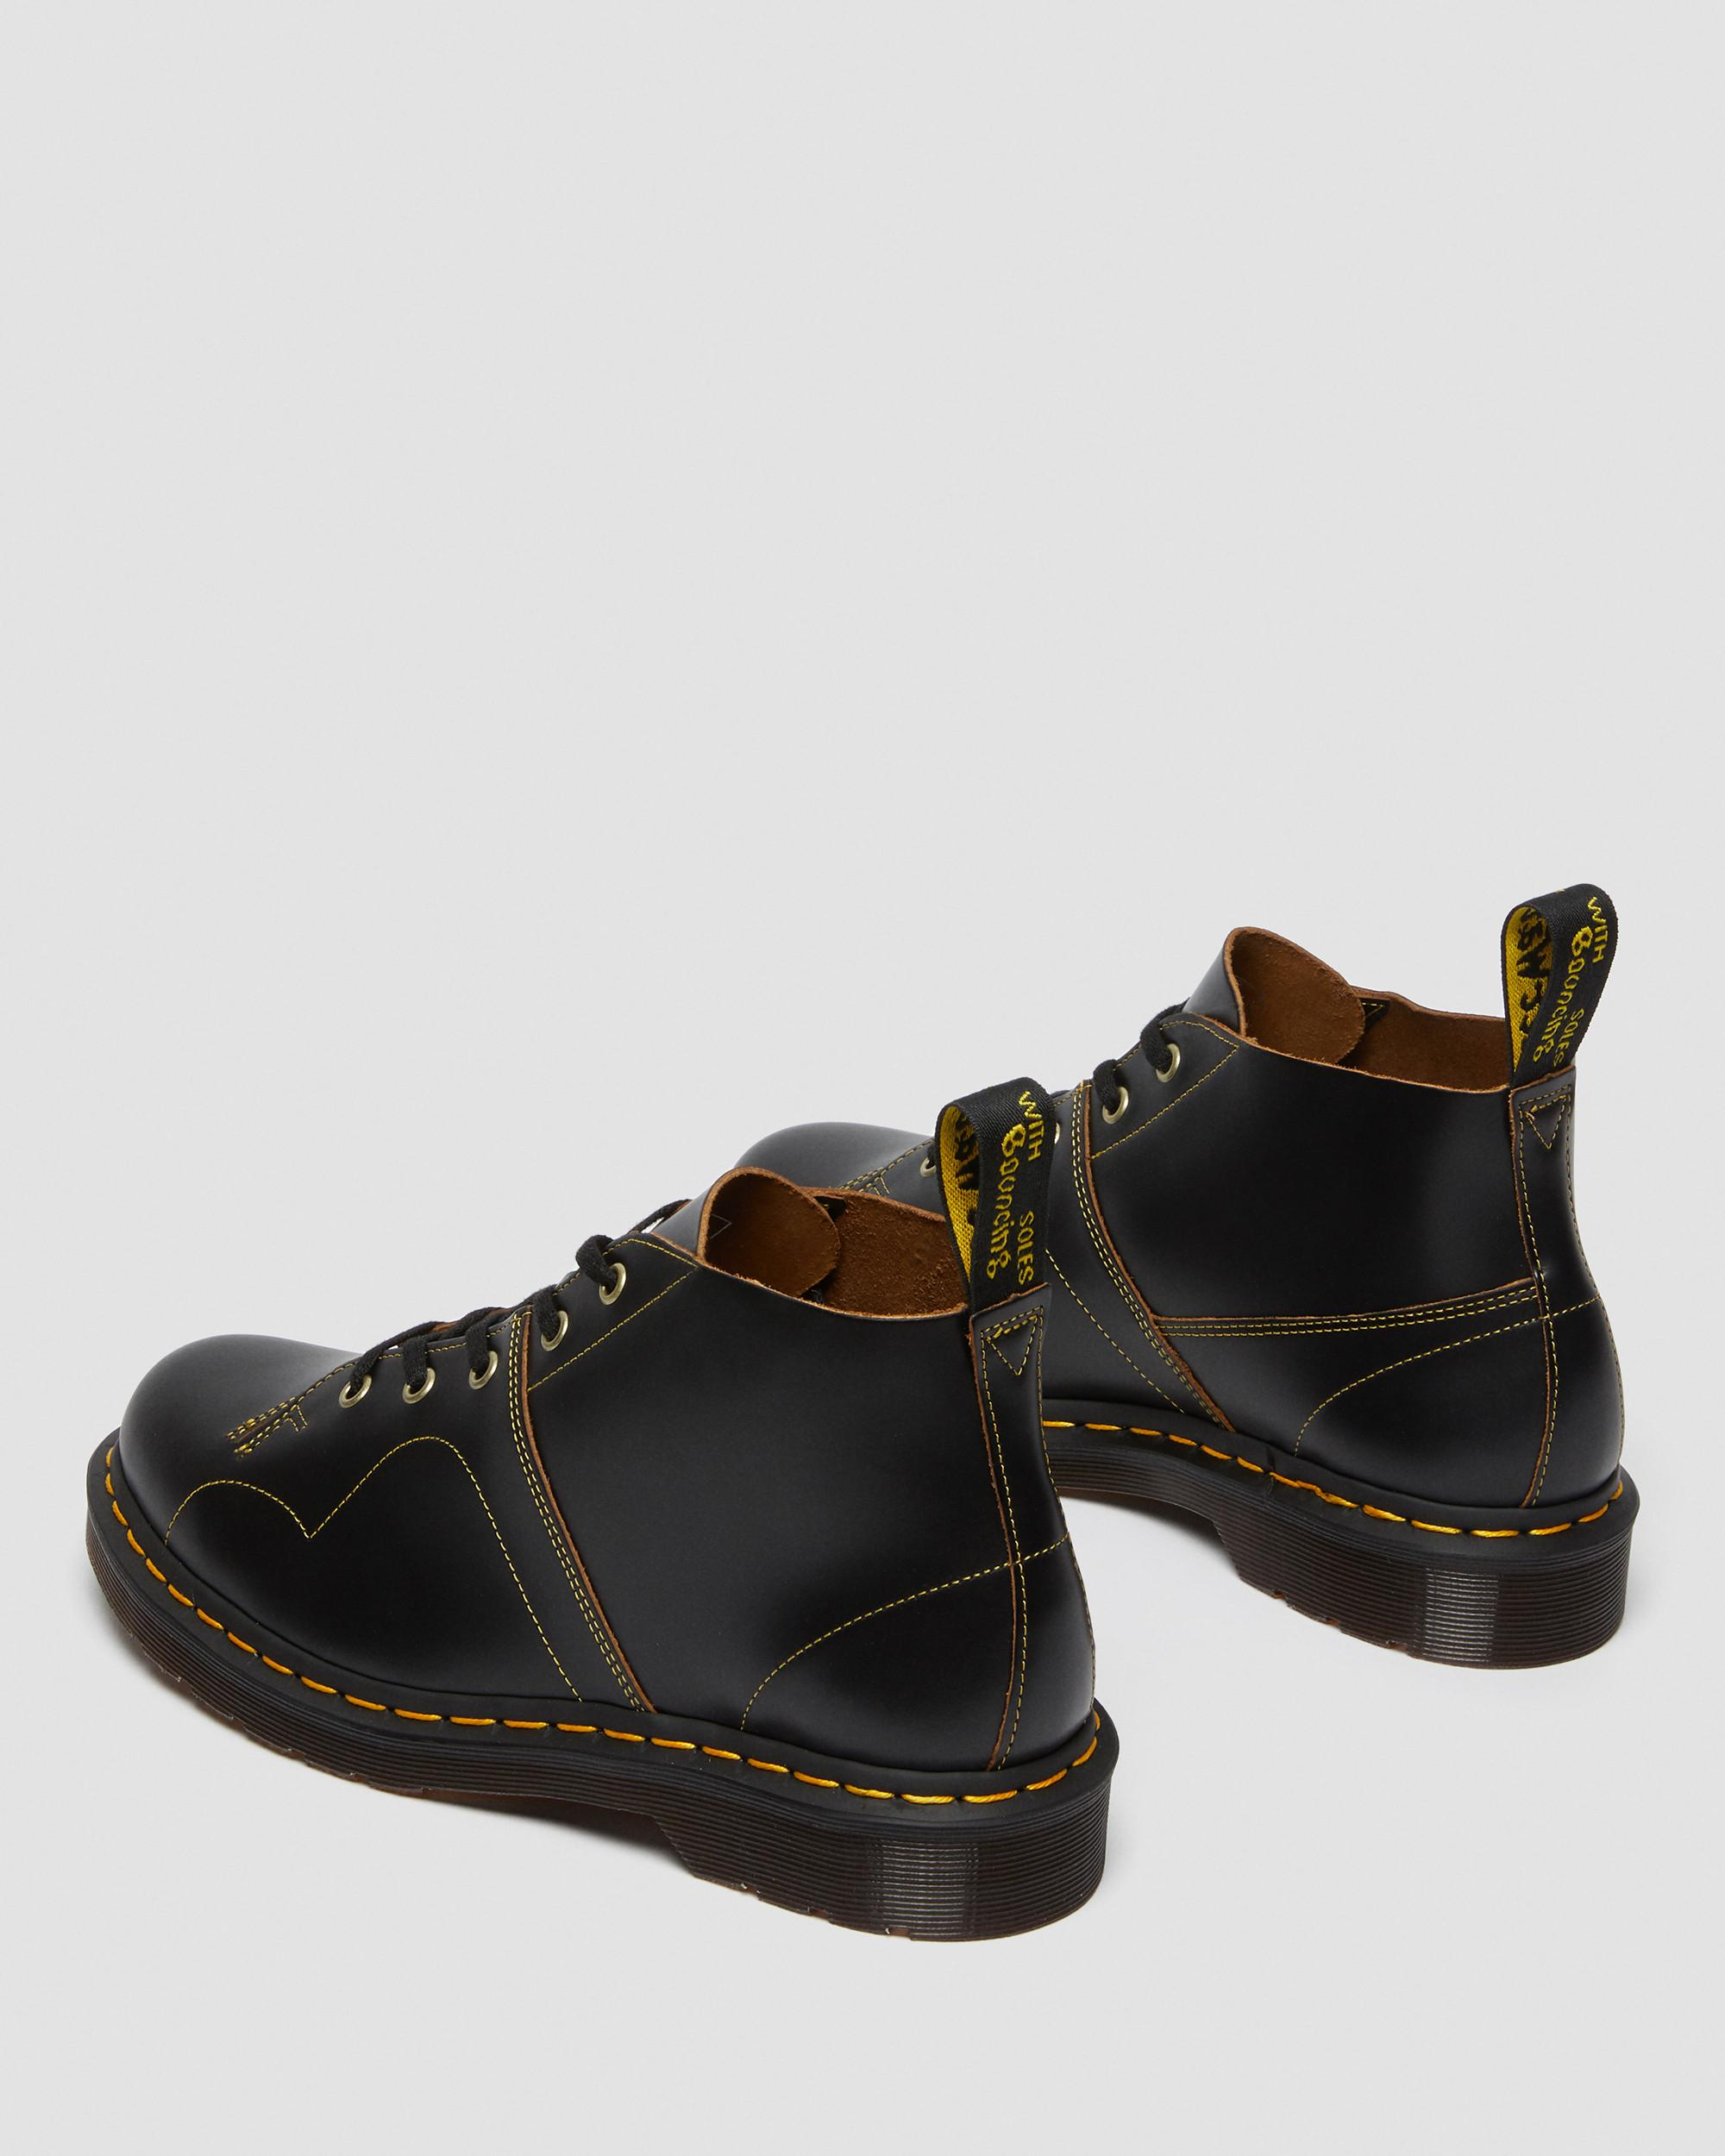 CHURCH LEATHER MONKEY BOOTS | Dr